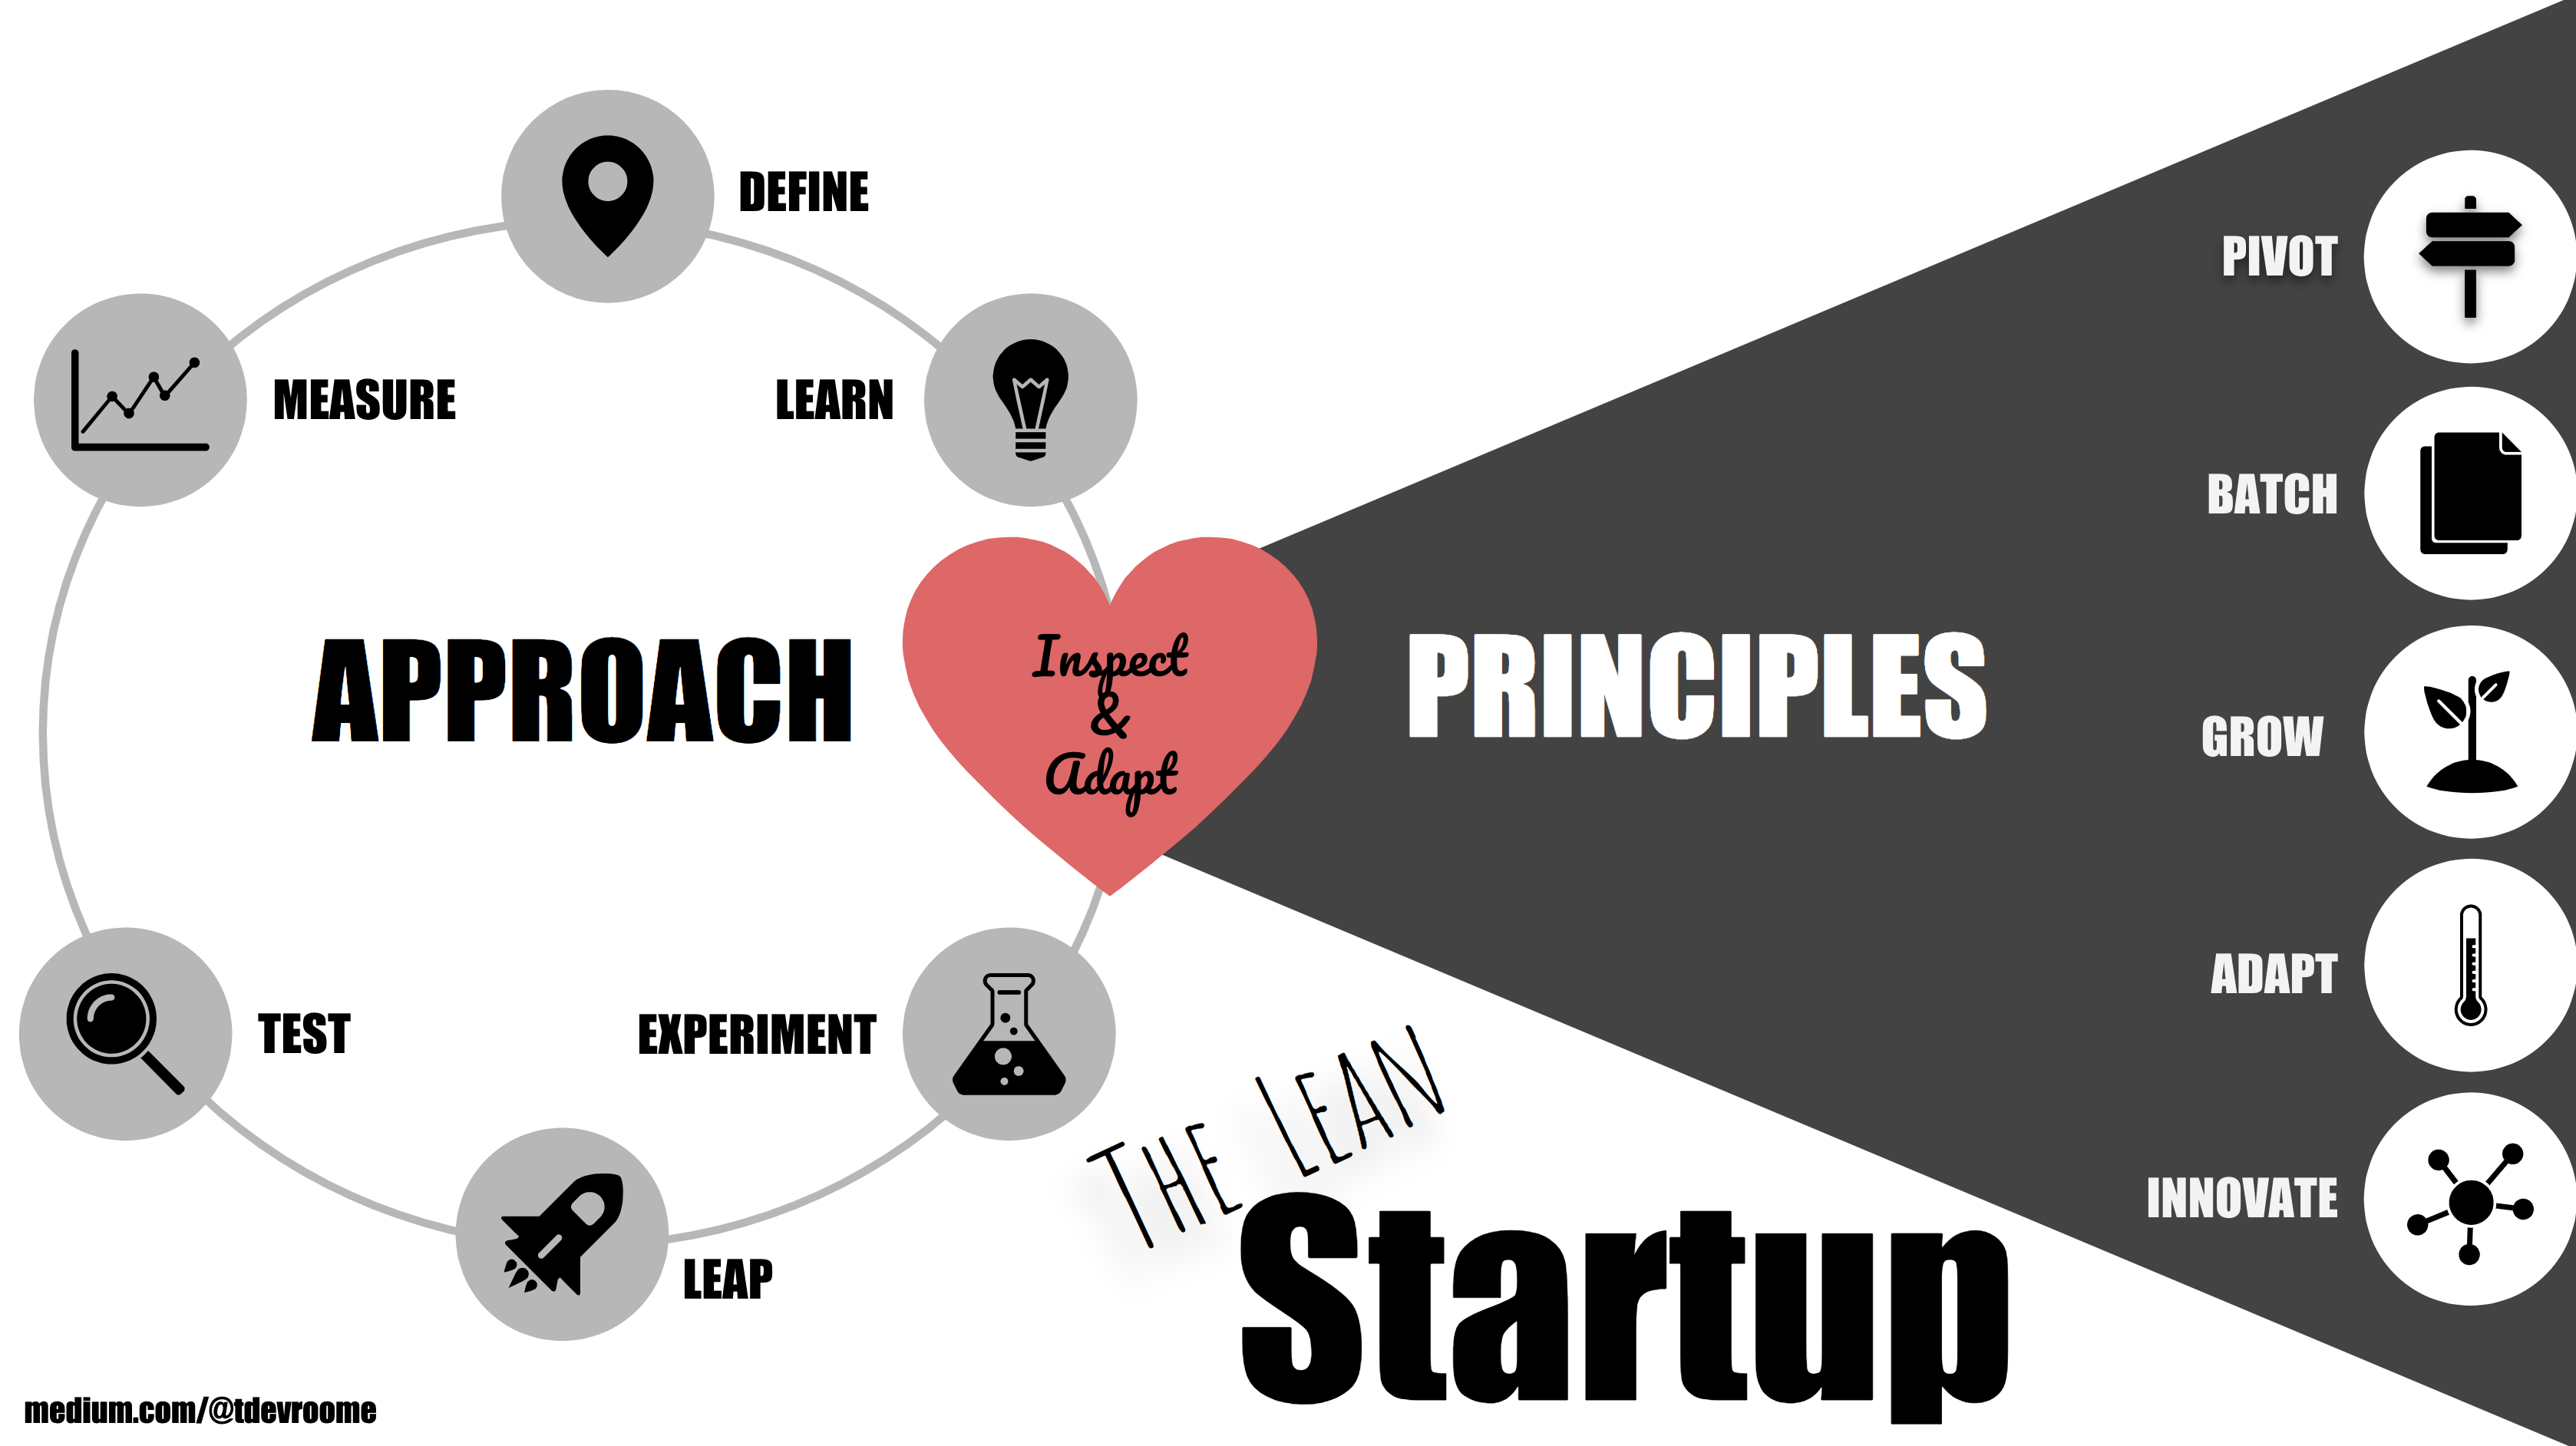 Book Summary The Lean Startup Learn The Principles Behind Eric Reis By Trev De Vroome Medium